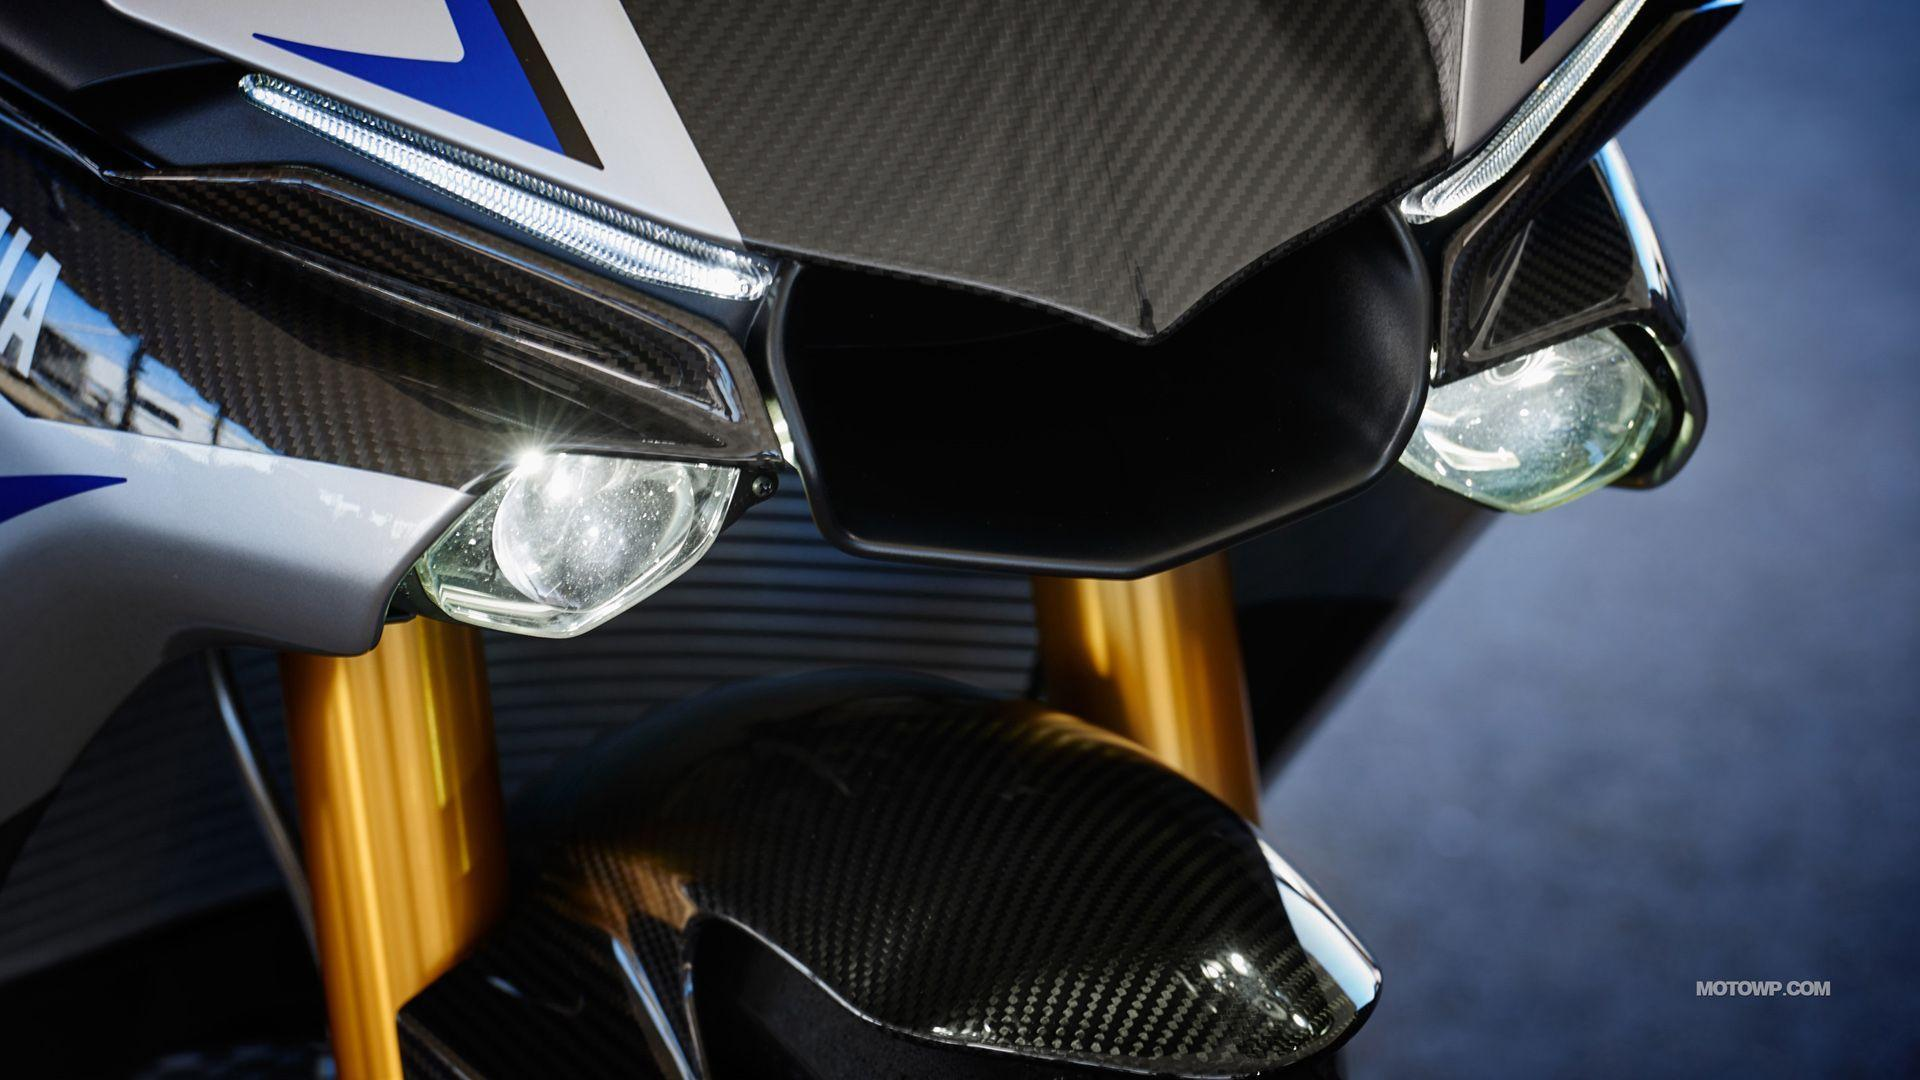 Yamaha Yzf R1m Wallpapers High Quality Resolution For Free Wallpapers